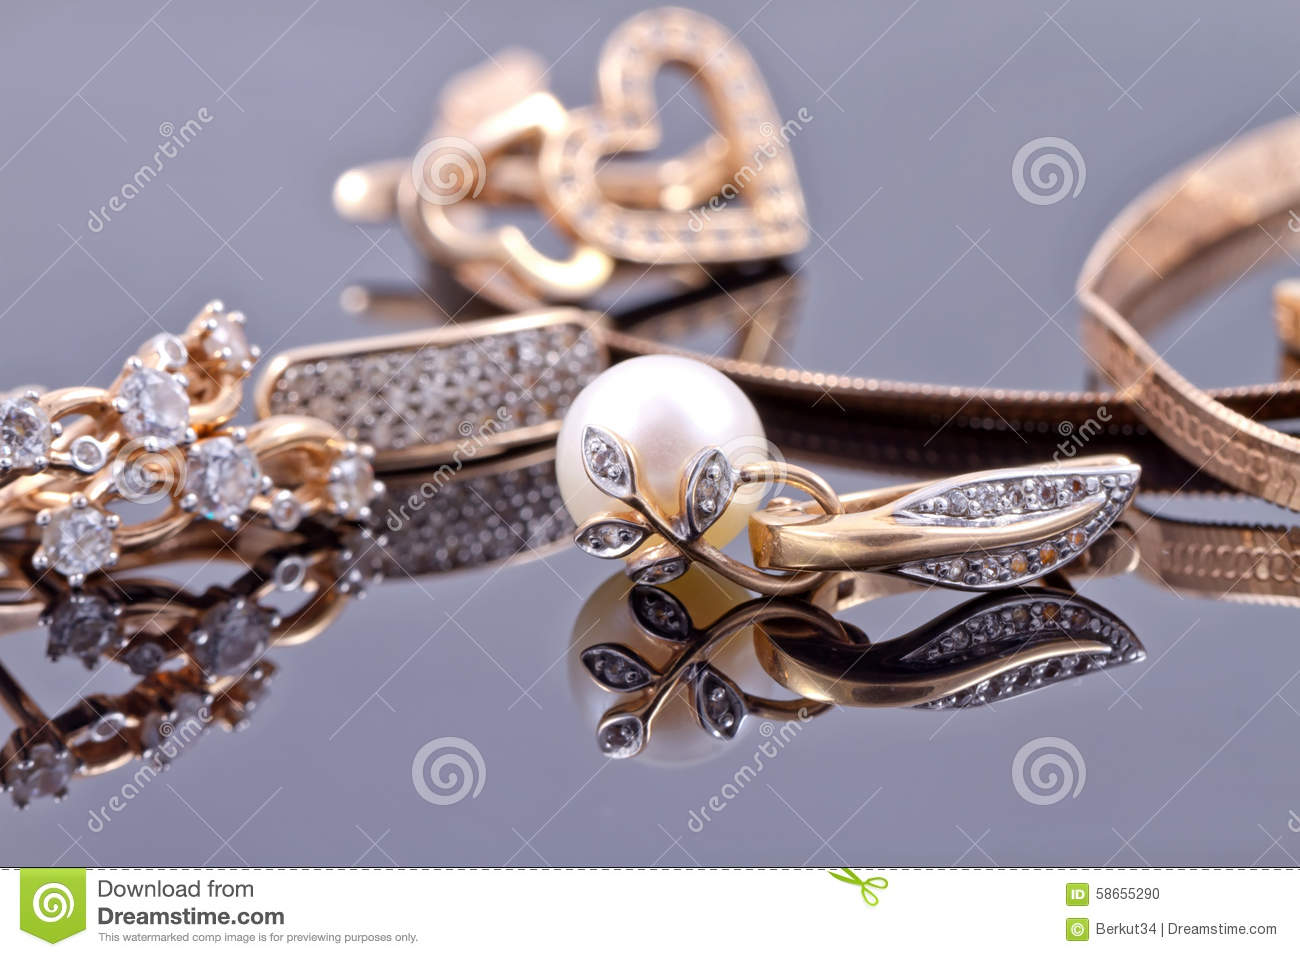 Best Gift For Girl - Gold Jewelry Stock Photo - Image: 58655290